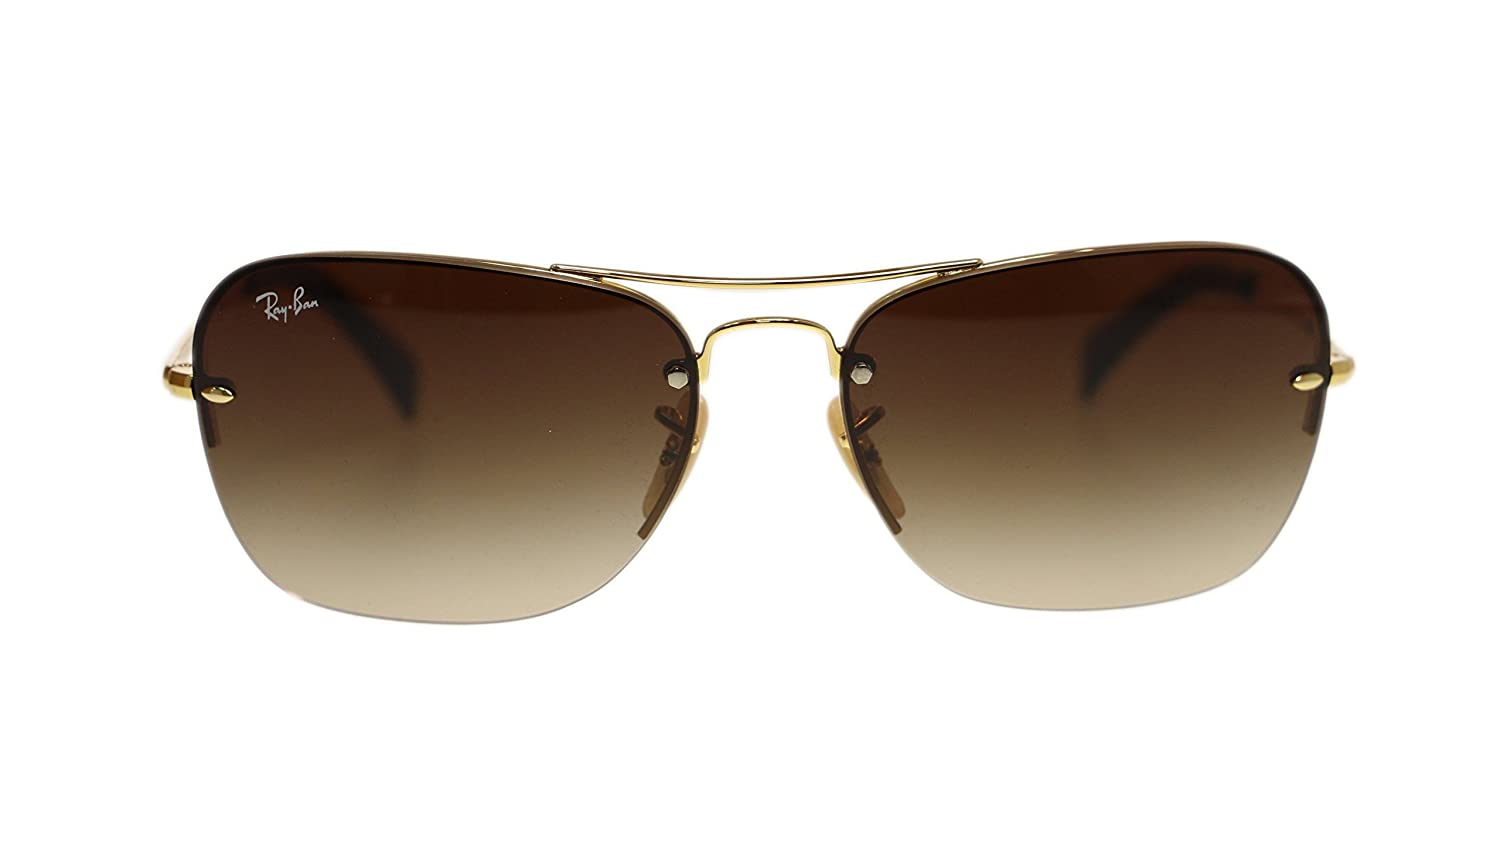 d4b20283c0569 Ray Ban Mens Sunglasses RB3541 001 13 Gold Brown Gradient Lens 61mm  Authentic  Amazon.co.uk  Clothing